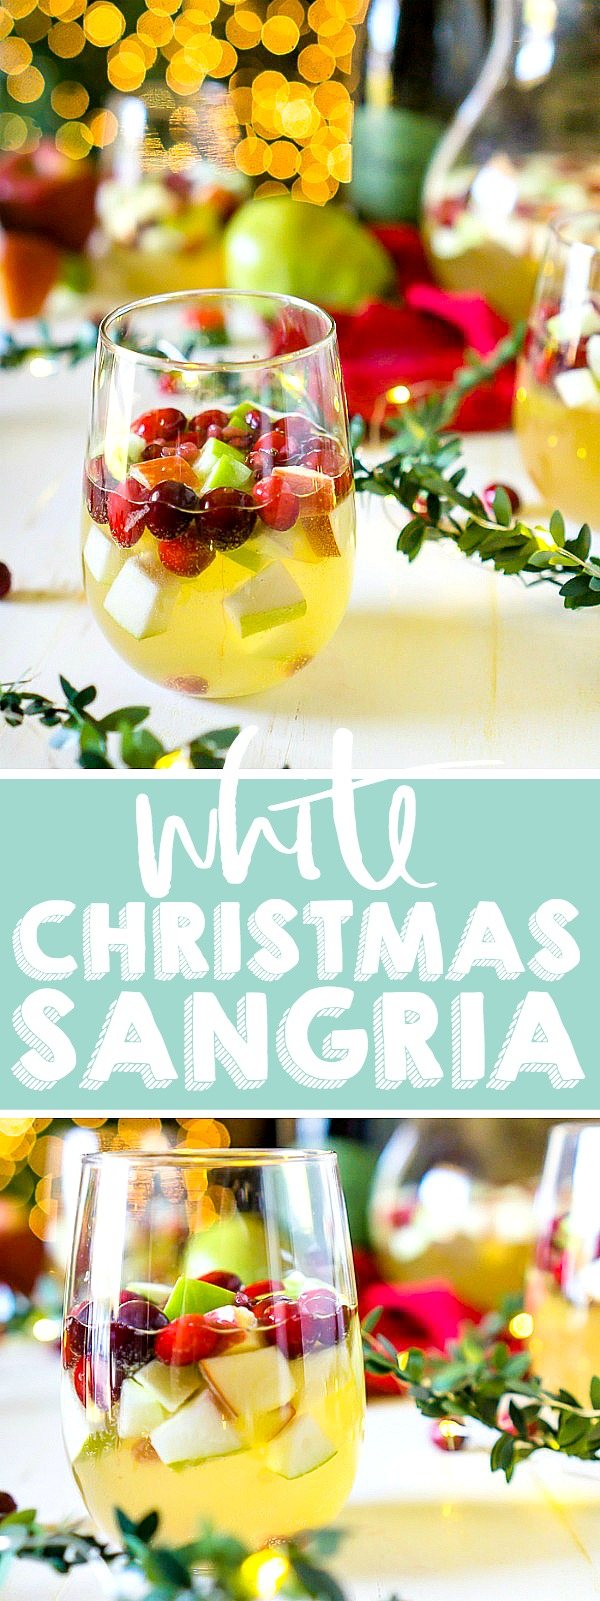 I'm dreaming of a White Christmas Sangria, filled with tasty red and green fruit for a festive holiday cocktail! Just fill up the sangria pitcher with red and green apples, pears, cranberries and pomegranates and some white wine and prosecco! Lightly sweet and tangy fruit makes a an easy Christmas punch. | THE LOVE NERDS #christmascocktail #sangriarecipe #holidaypunch